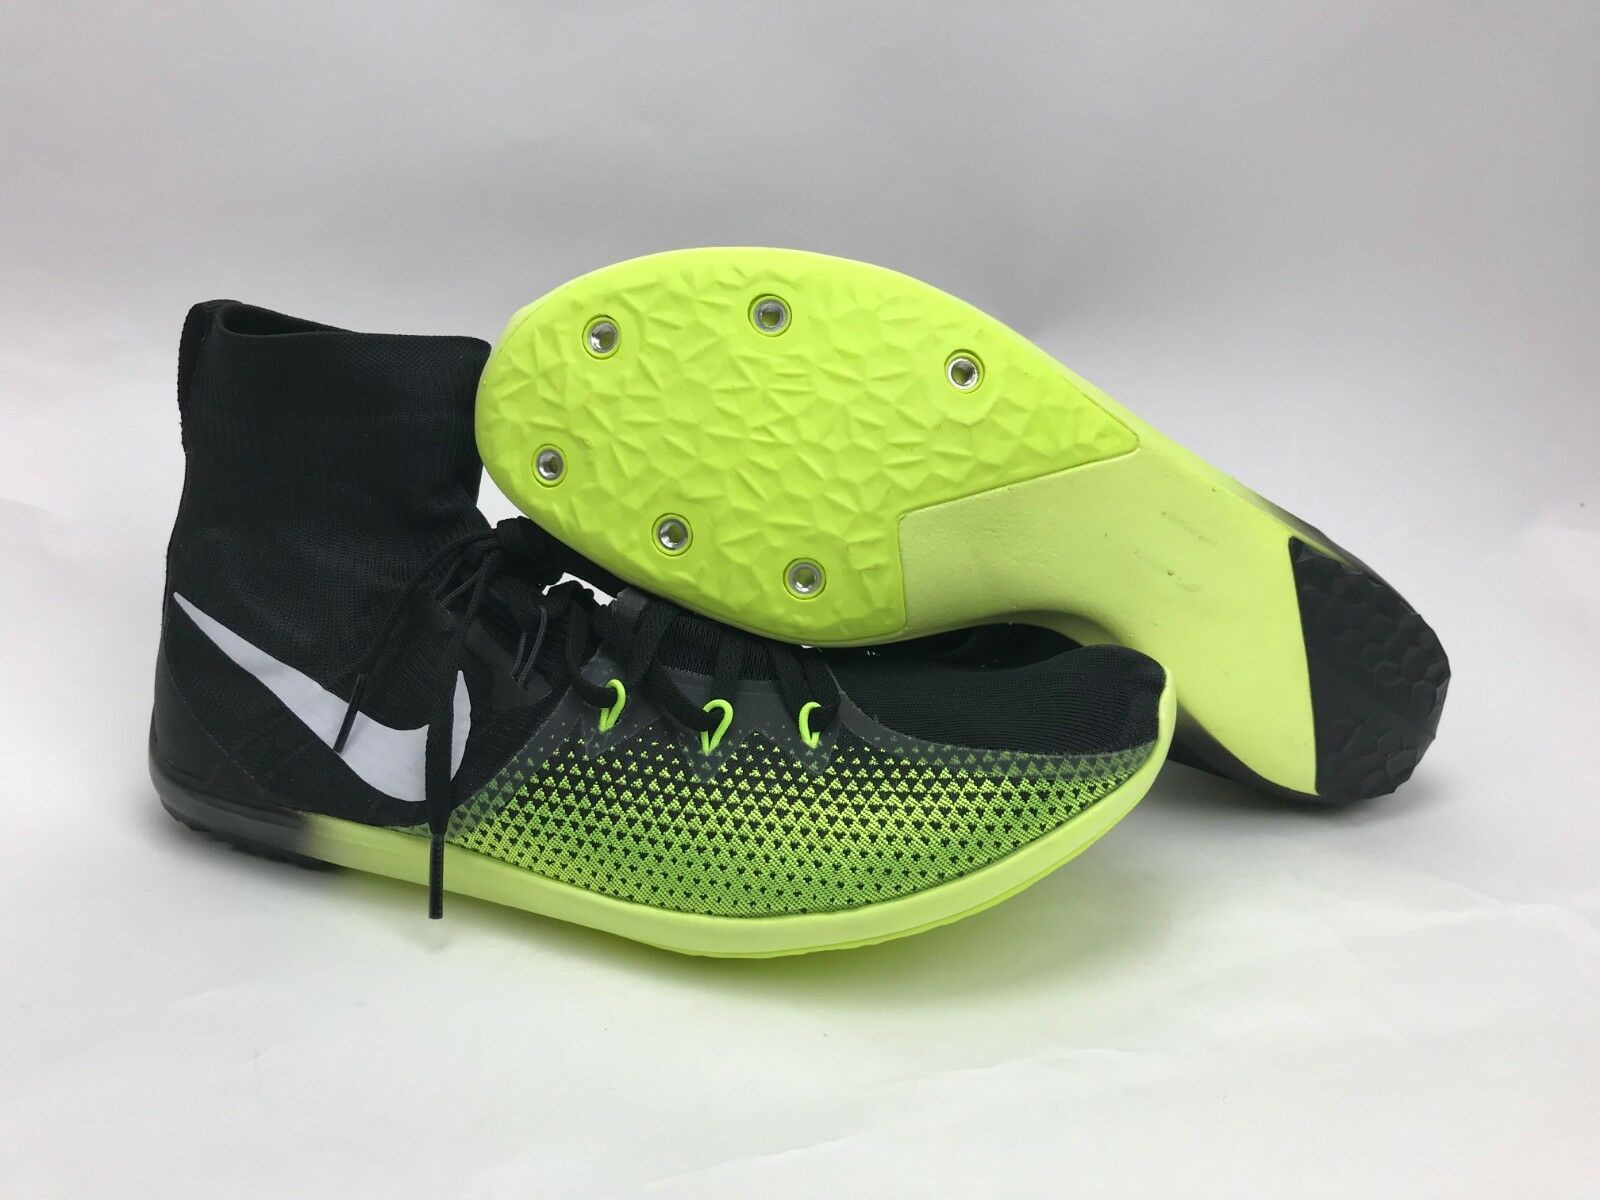 Nike Zoom Zoom Nike Victory 4 XC Unisex Spike Shoes 878804 017 Black Size Men 12 NO SPIKES de436a